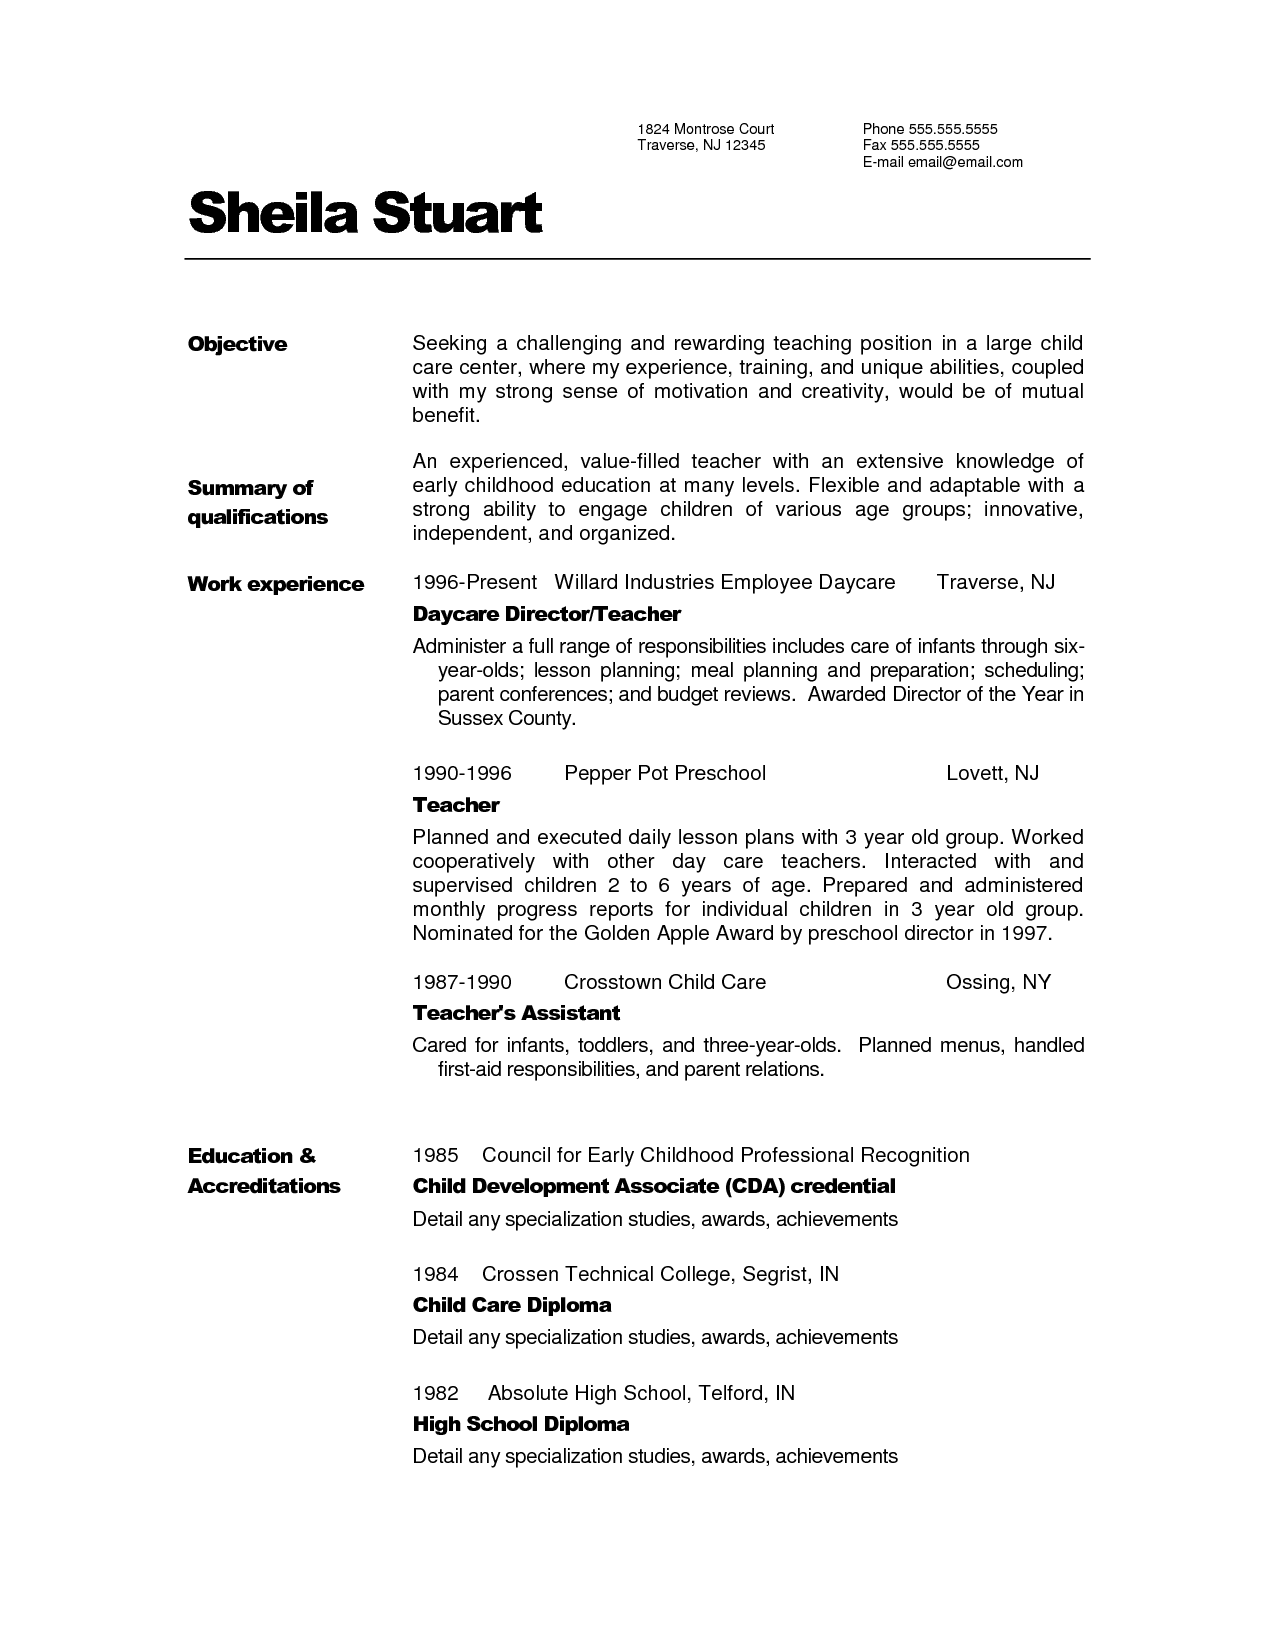 Artist resume examples art template achievable likeness tattica.info